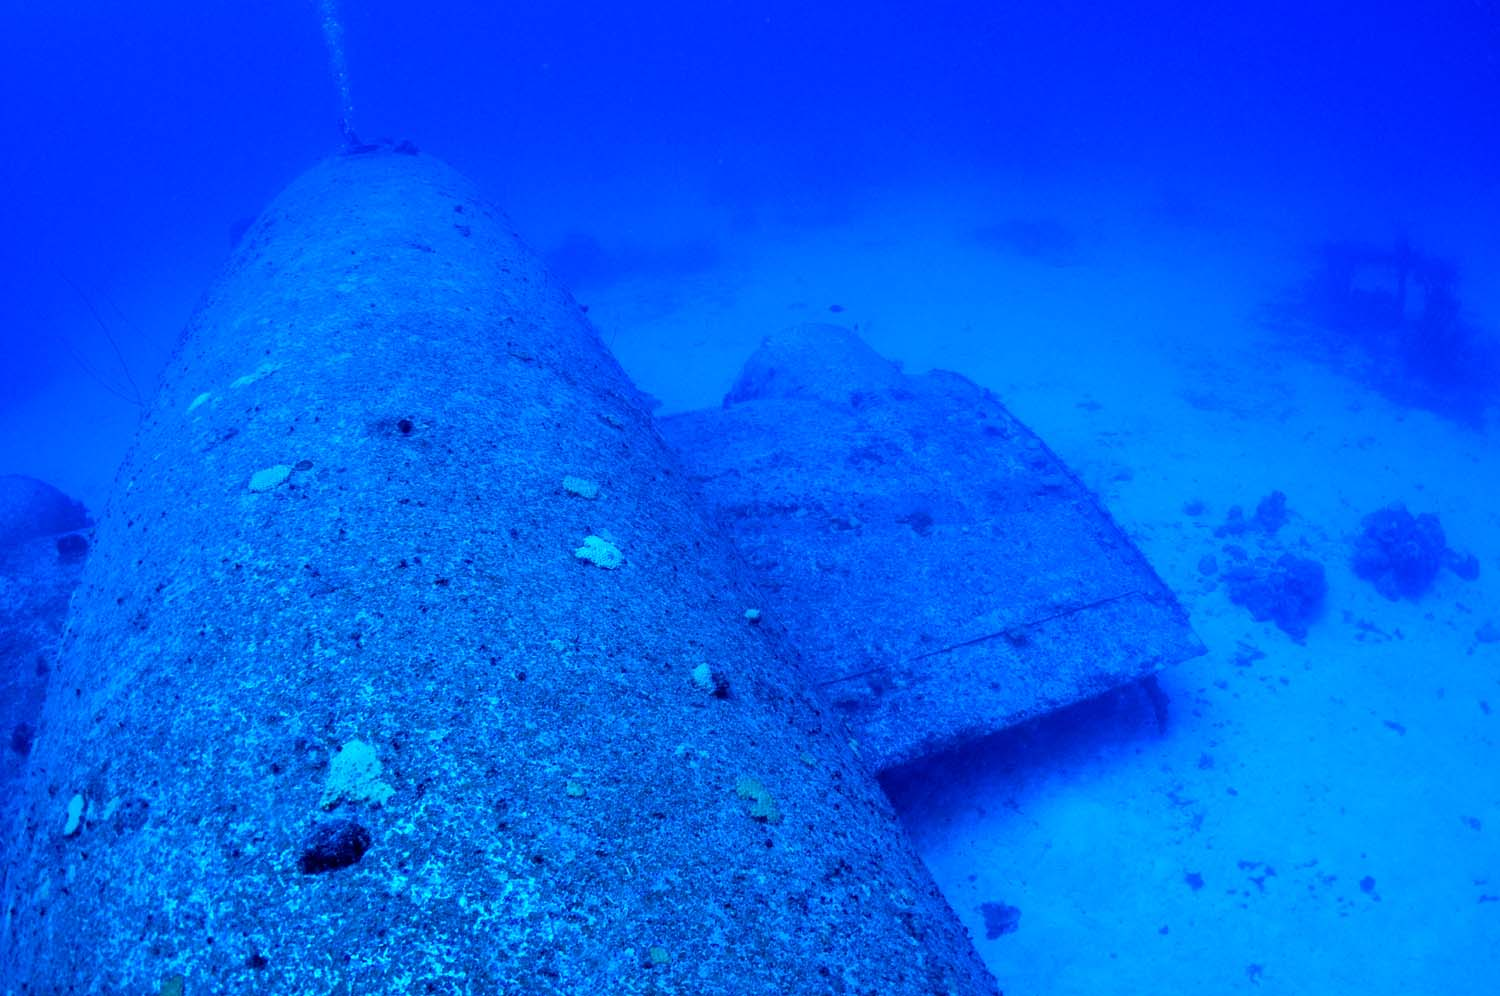 The wreck lies at a depth of 115 fsw (35 metres of salt water).